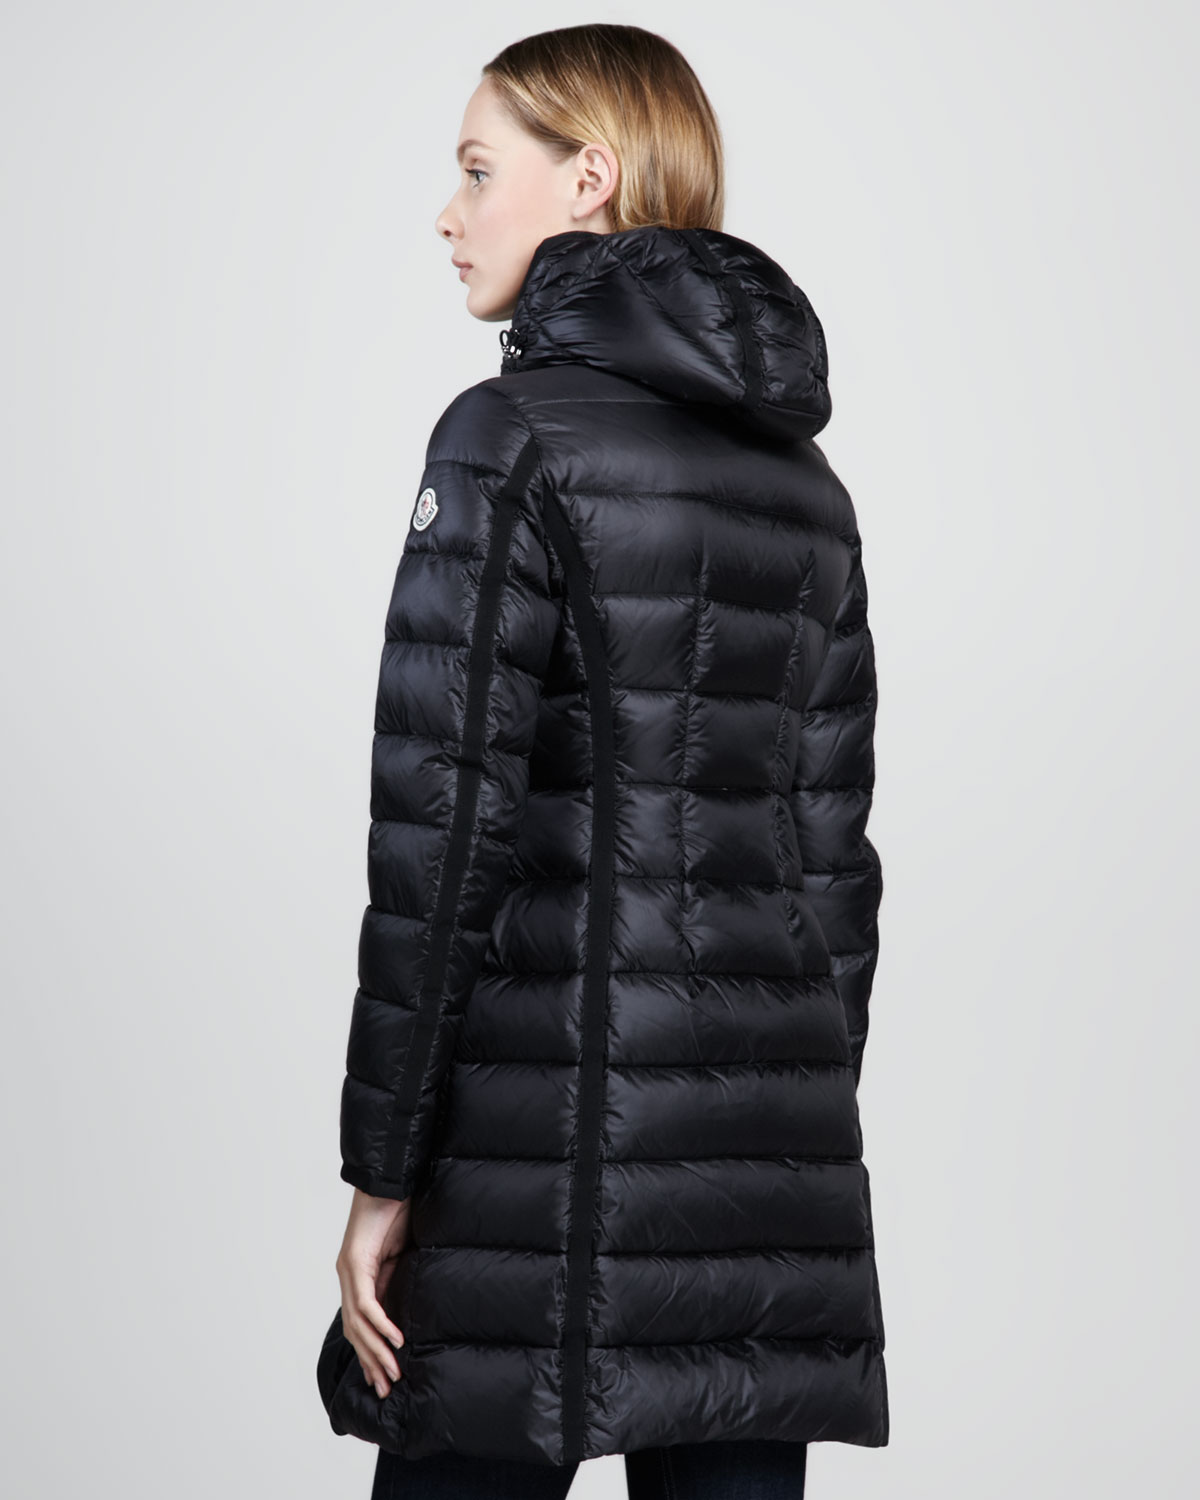 moncler hermine dartedwaist puffer coat black in black lyst. Black Bedroom Furniture Sets. Home Design Ideas